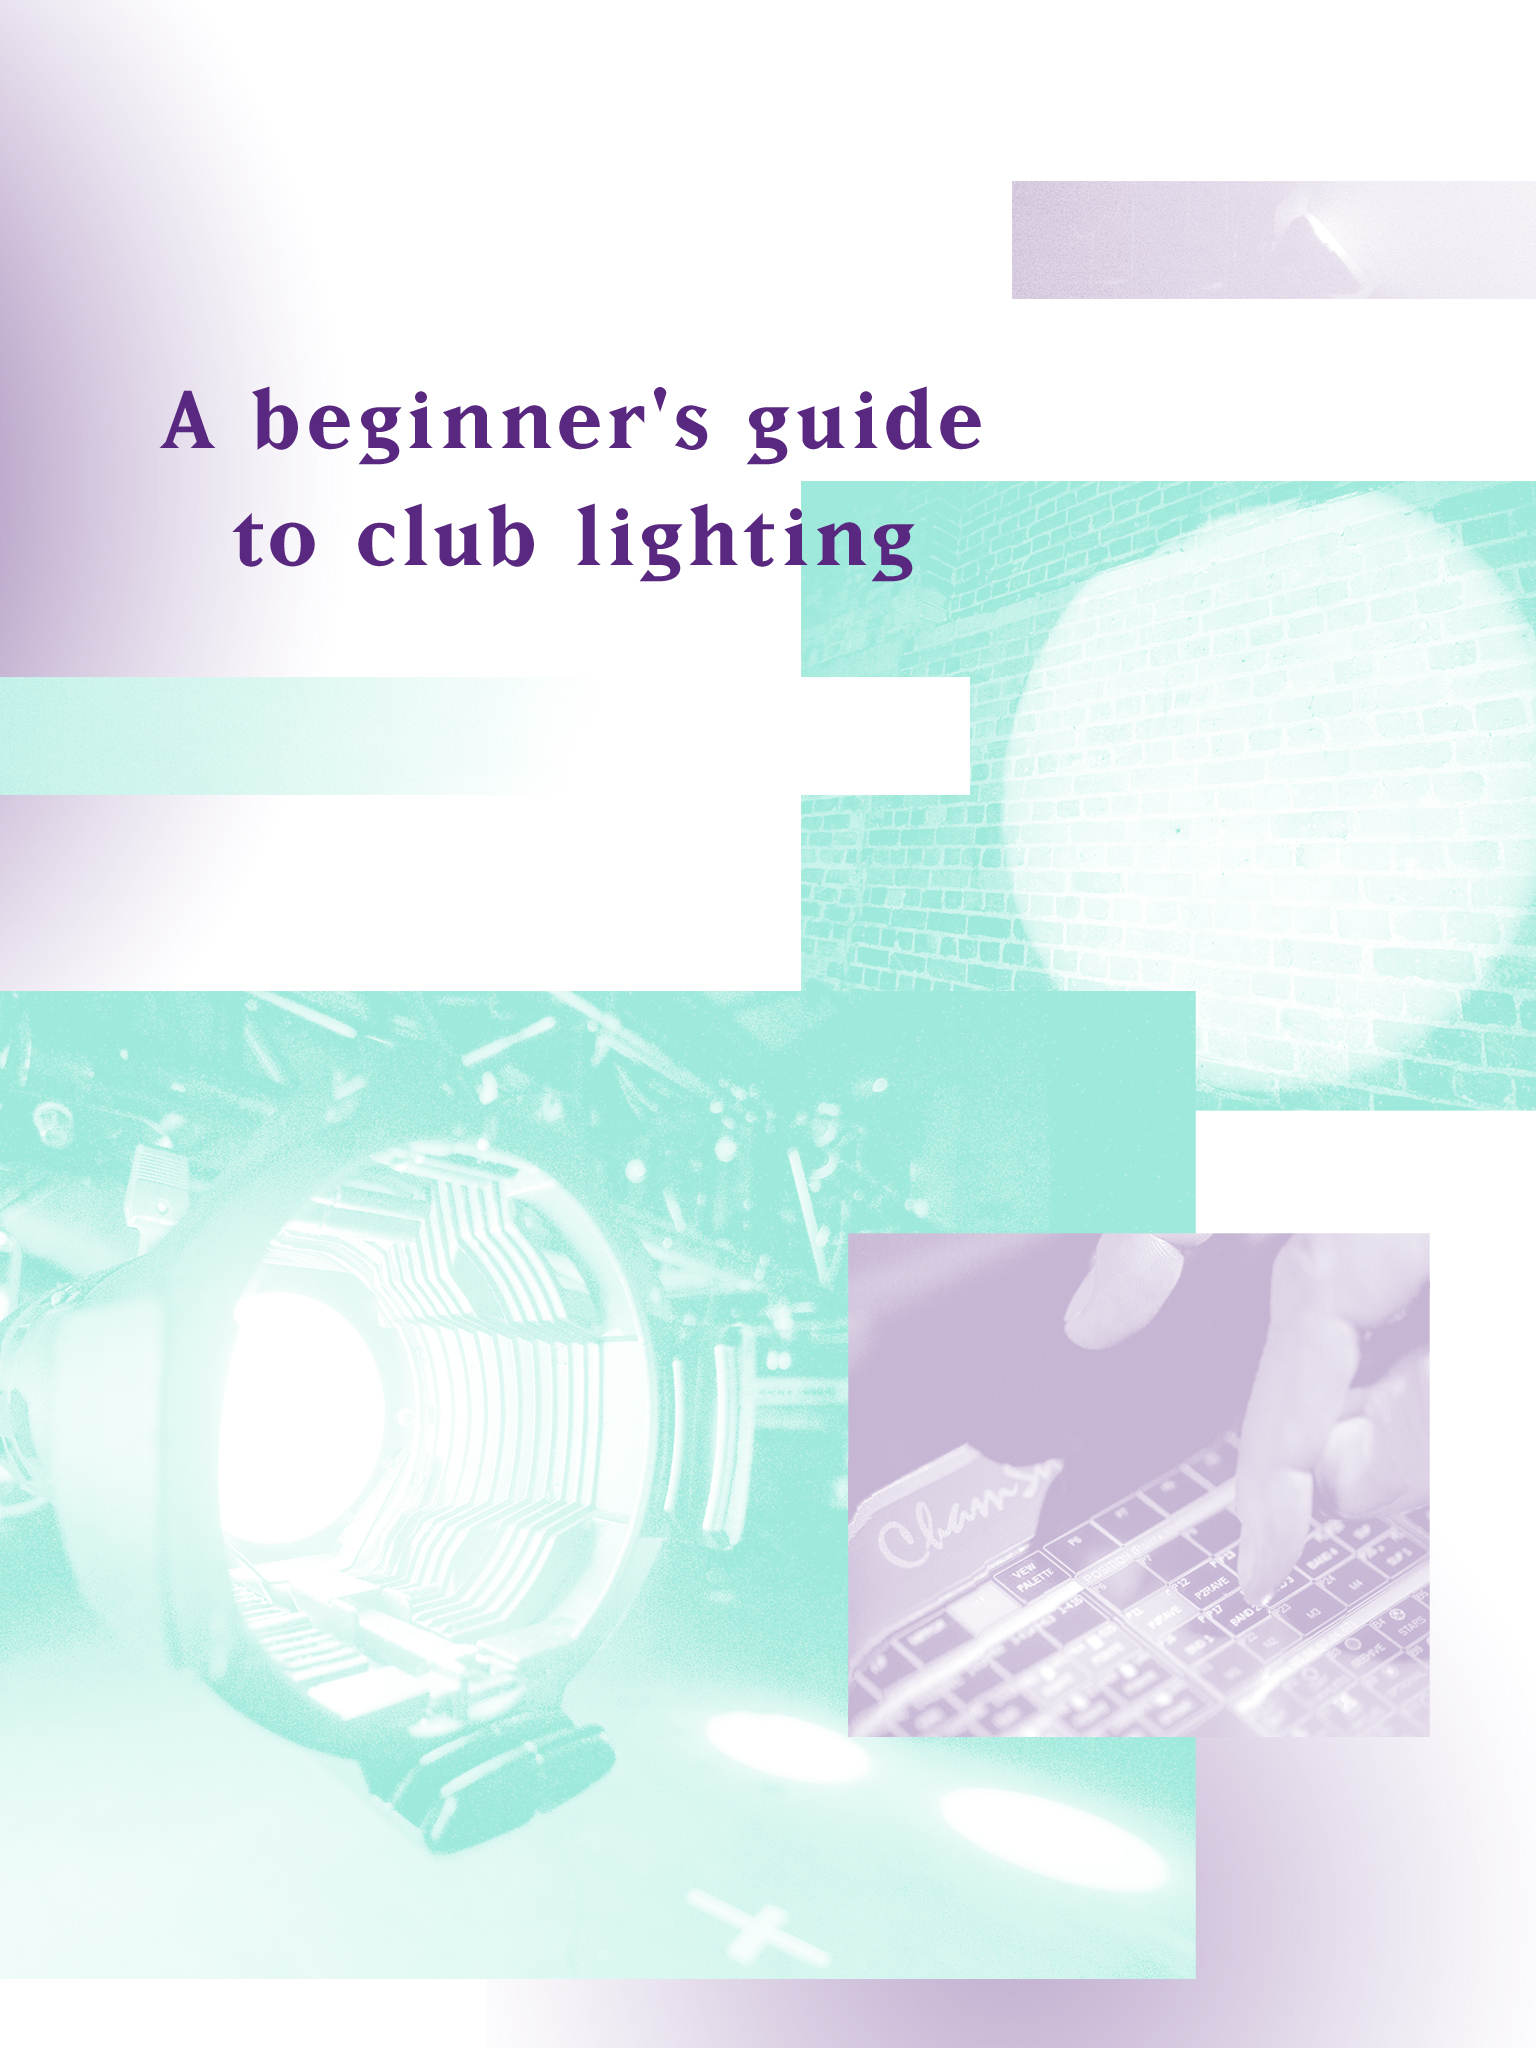 Ra A Beginners Guide To Club Lighting Chasing Led Circuit Design Issues